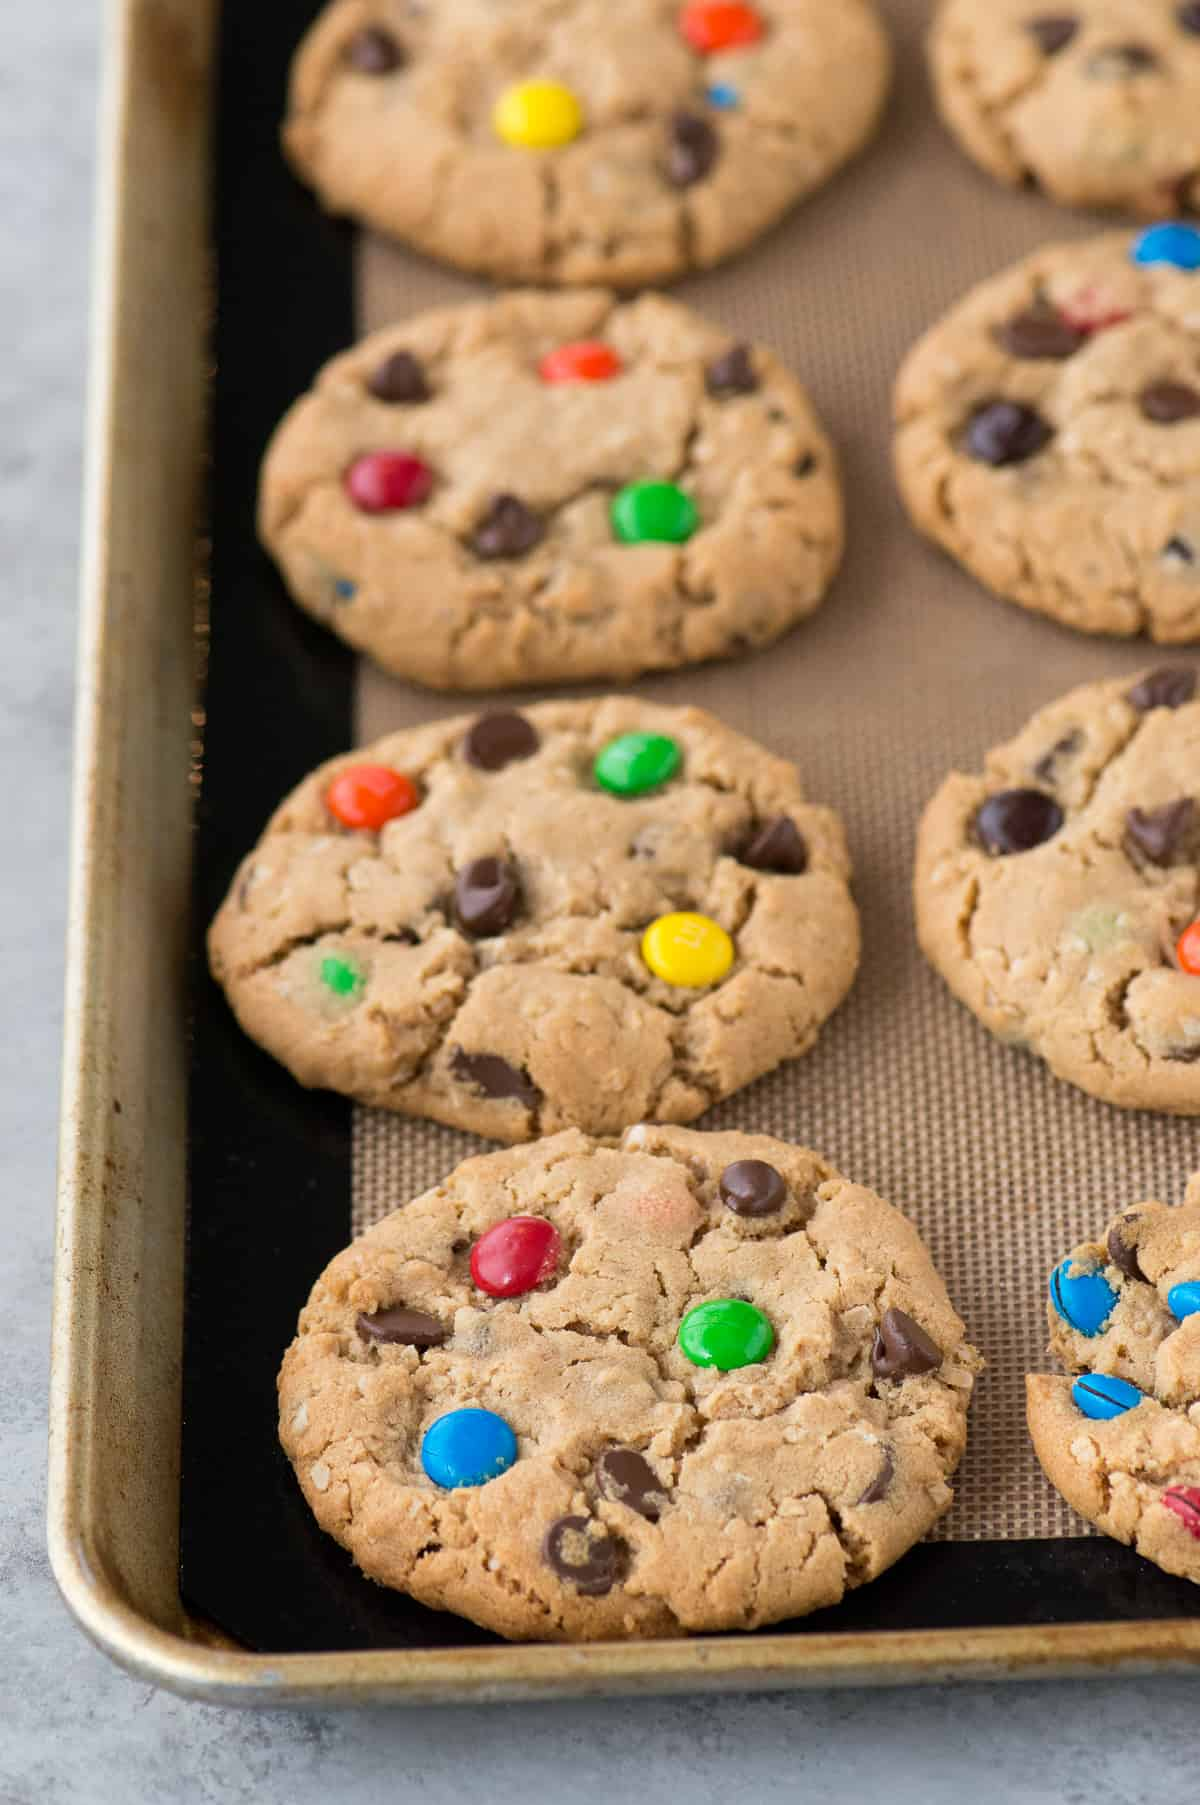 Classic monster cookies with oatmeal, chocolate chips, and m&ms! Plus lots of ideas for additional add-ins! These are chewy & soft and you can make them BIG or small!